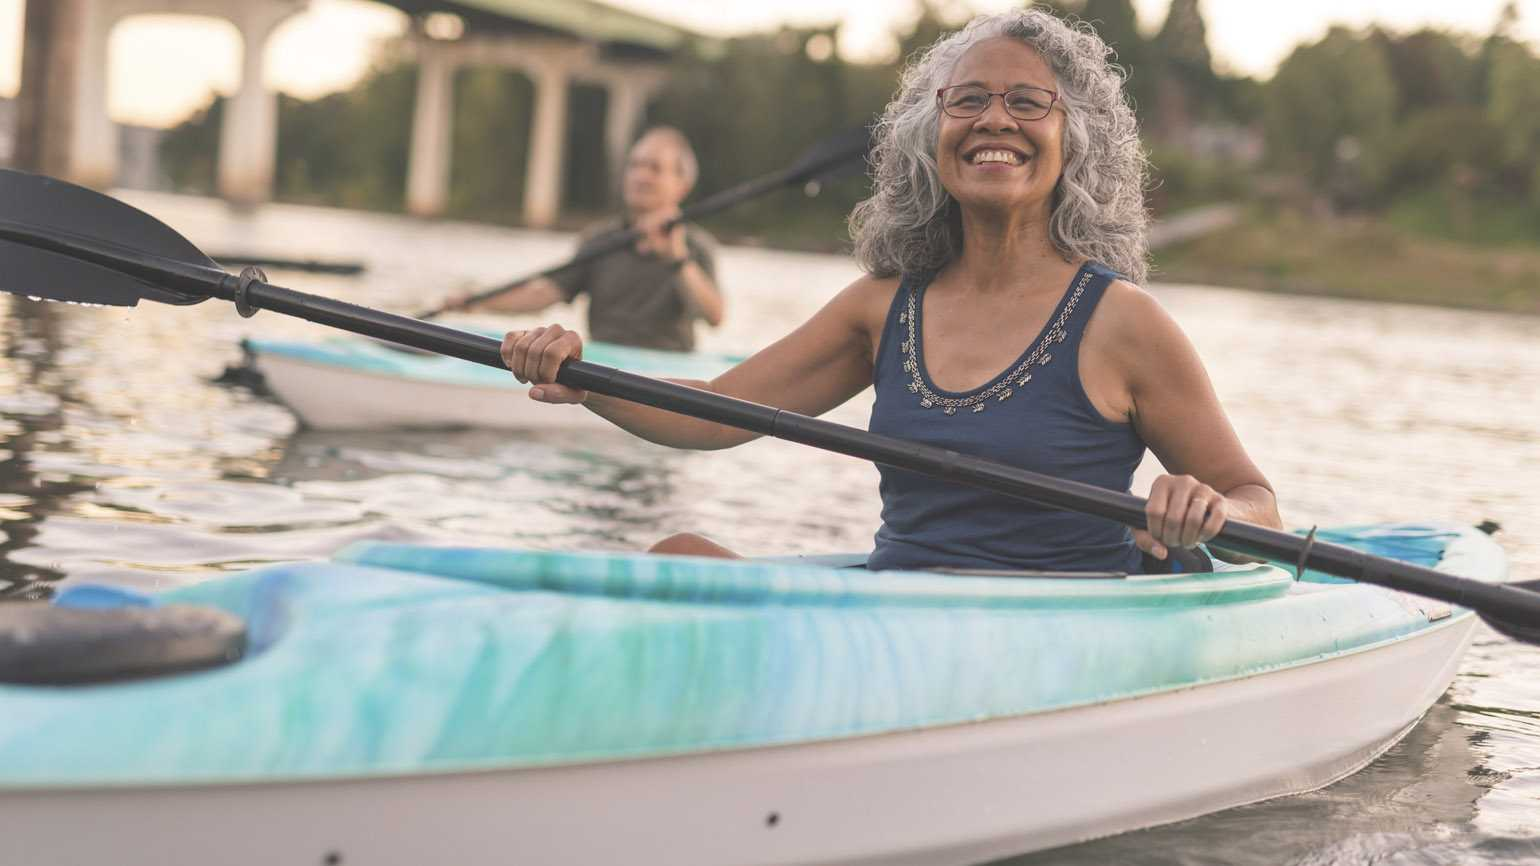 An ethnic senior woman smiles while kayaking with her husband.